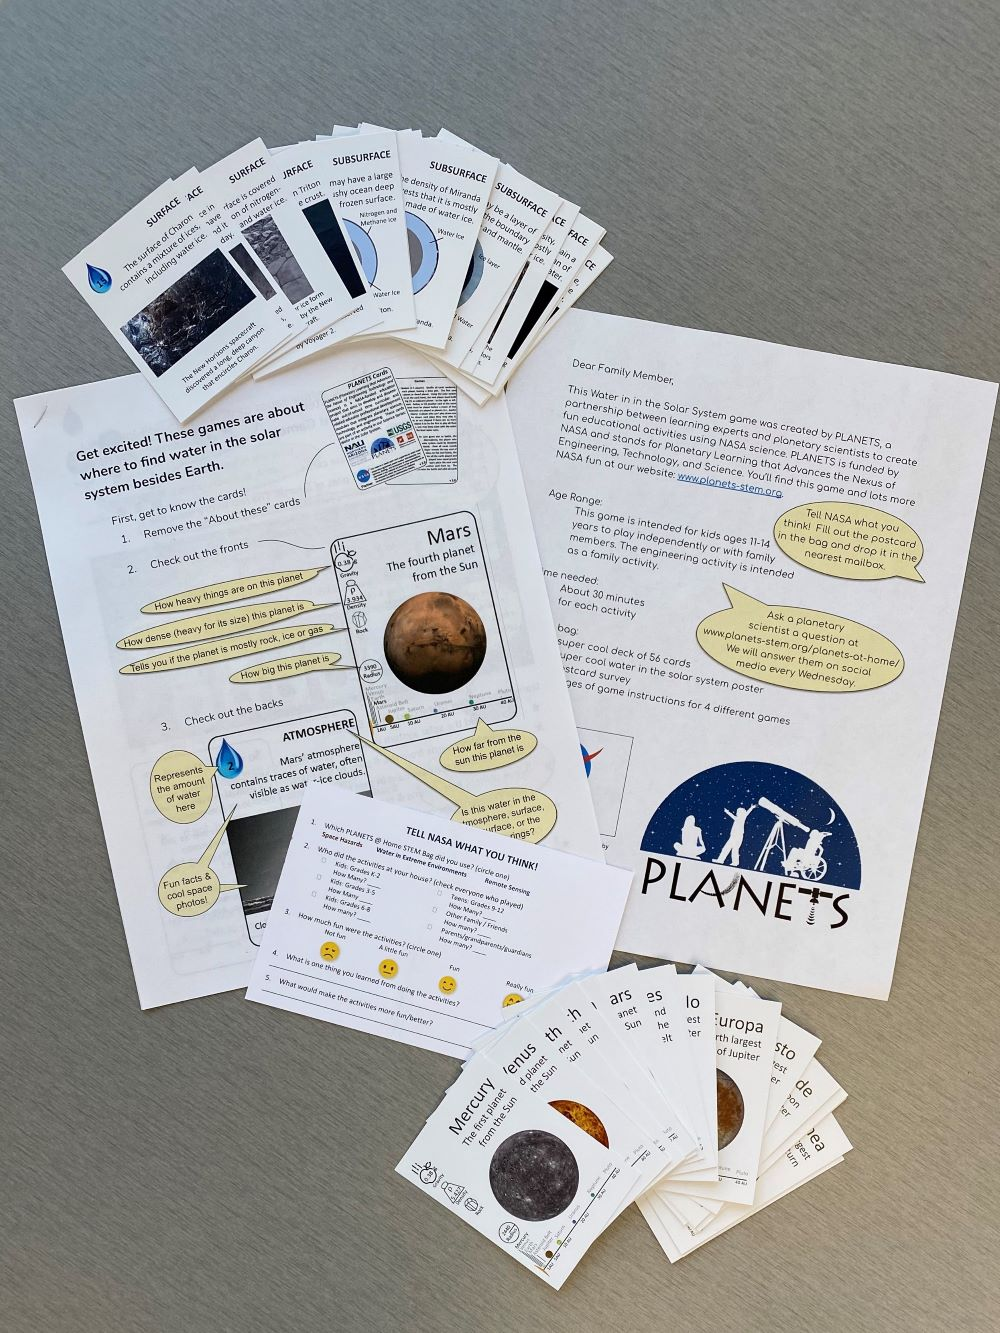 PLANETS materials for at home